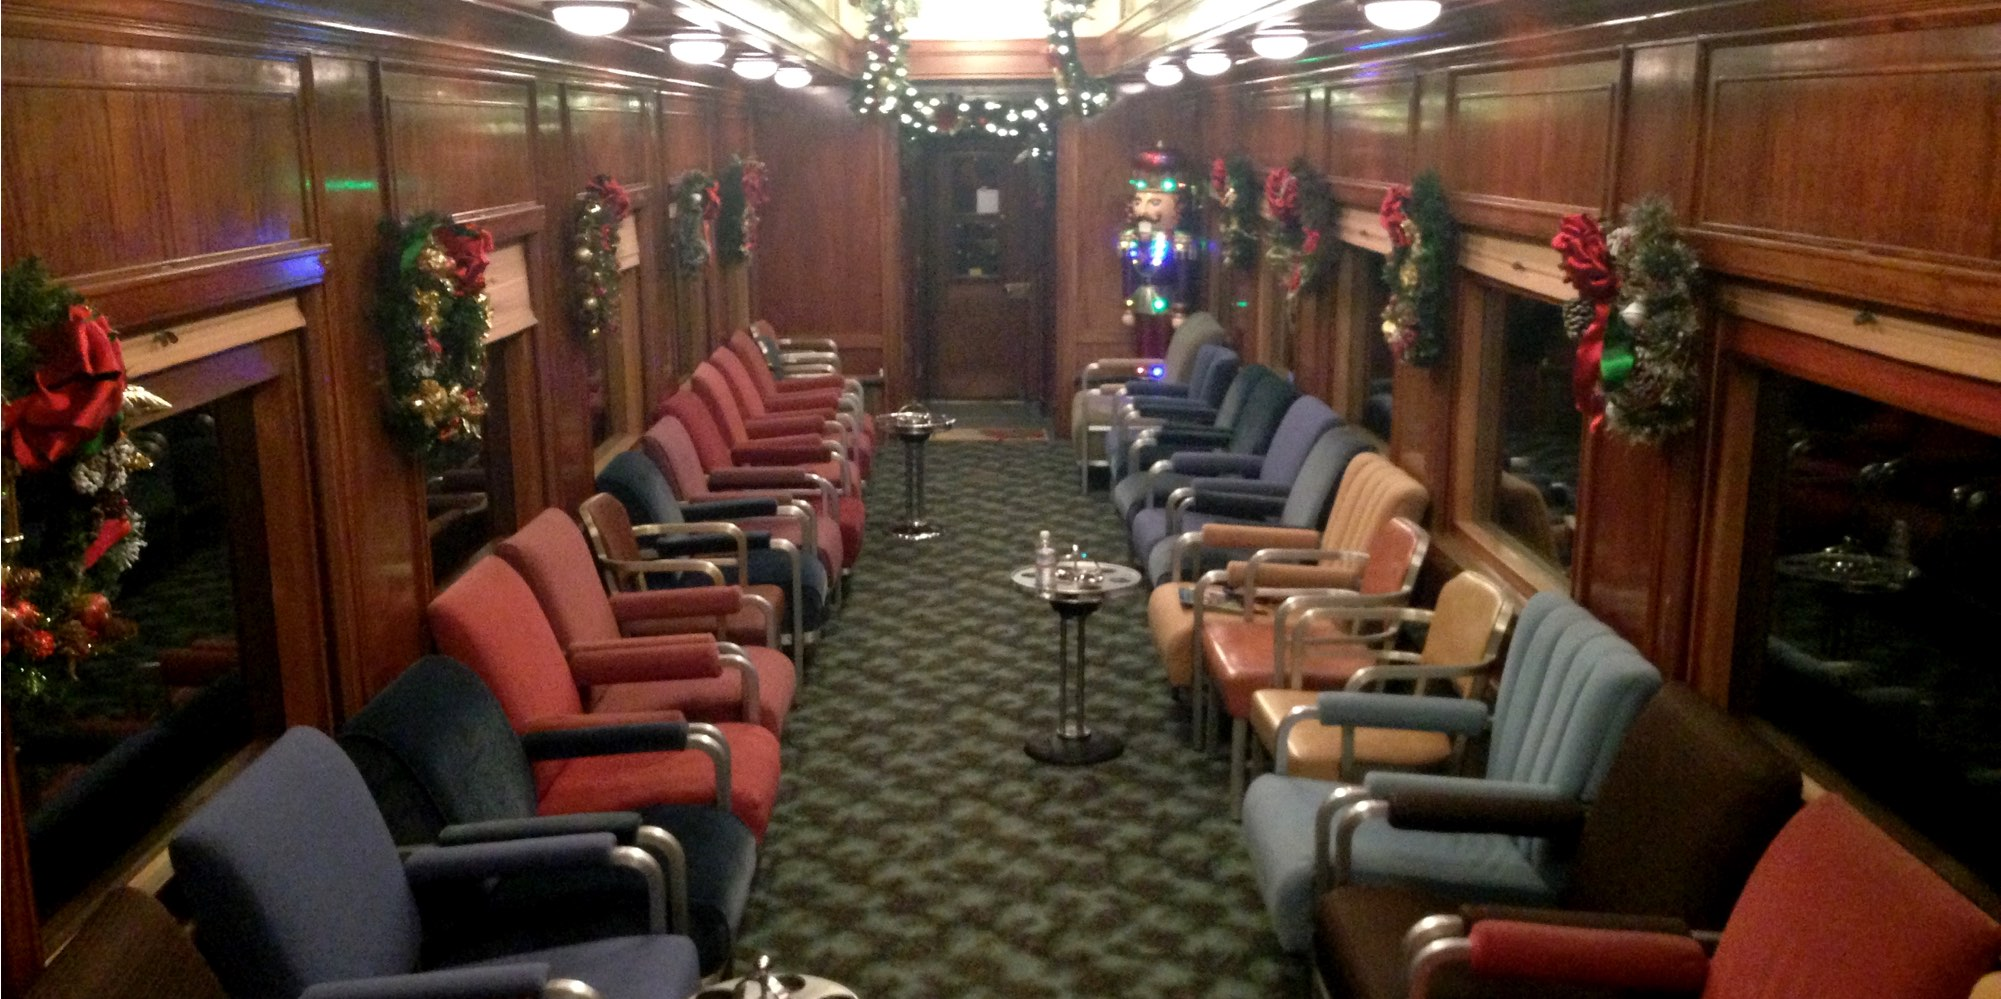 Niles Canyon Railway Train of Lights Diner Car as Parlor Car